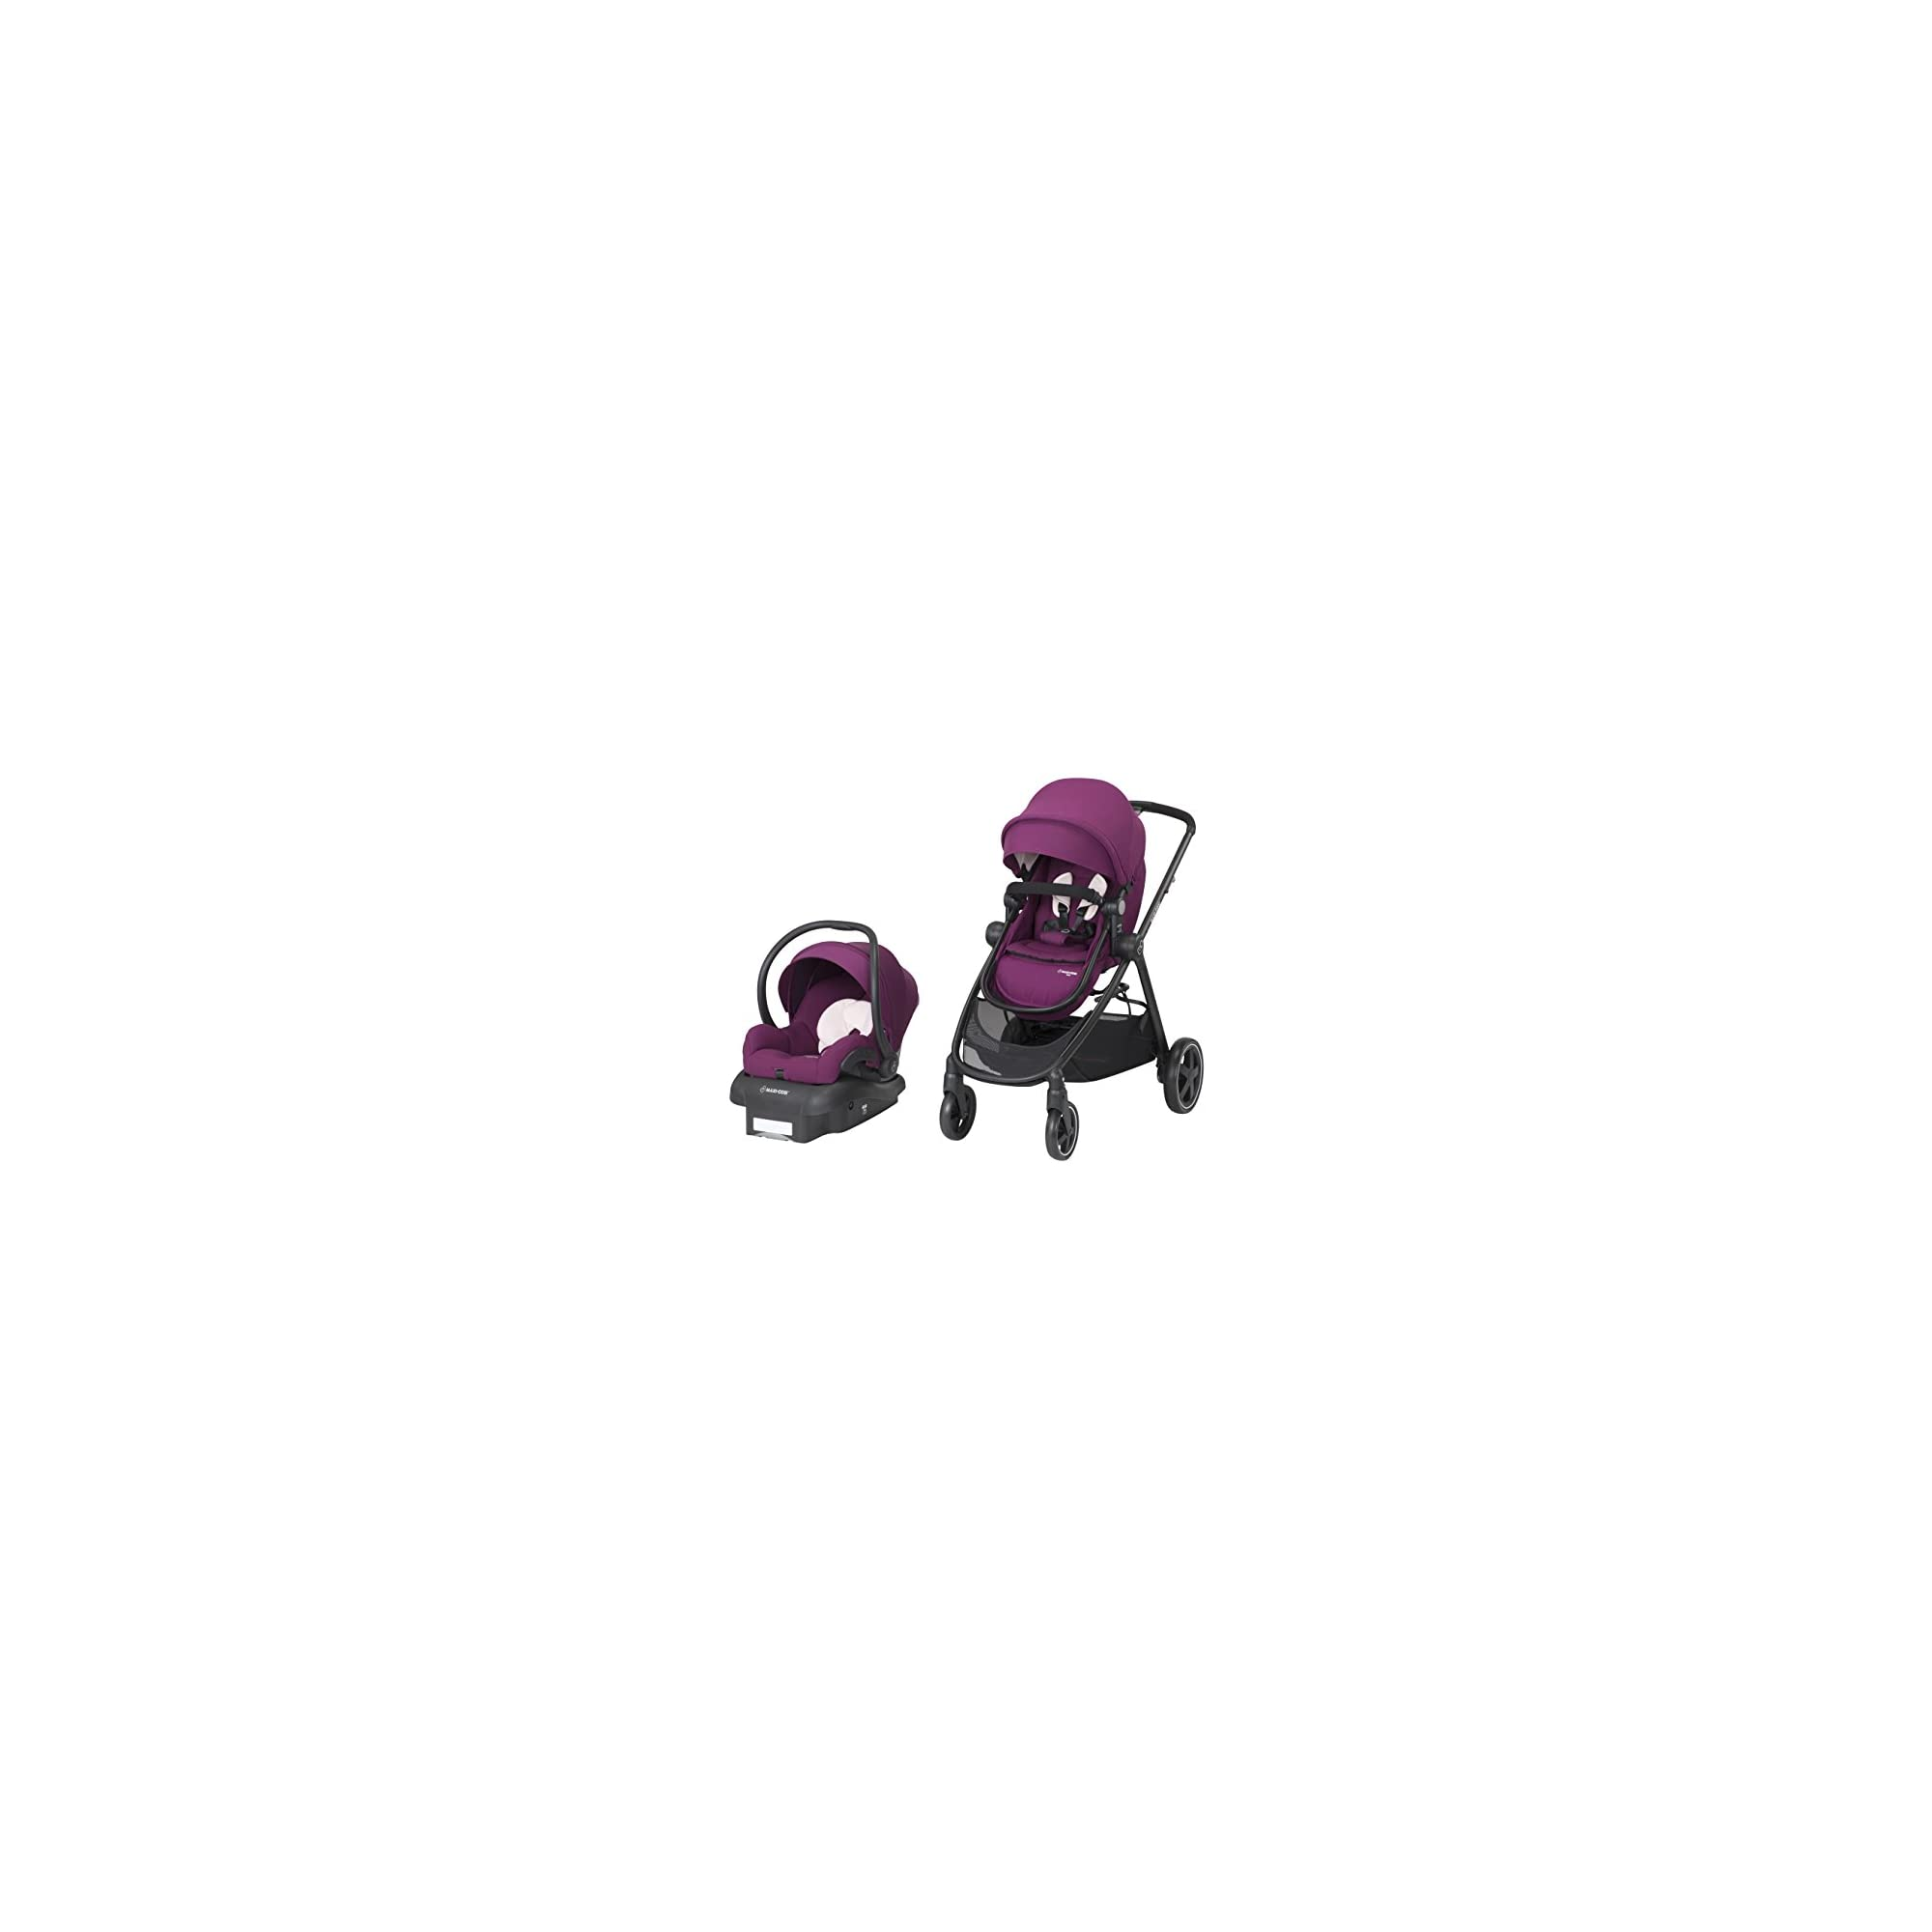 Maxi-Cosi Zelia 5-in-1 Modular Travel System – Stroller and Mico 30 Infant Car Seat Set, Violet Caspia